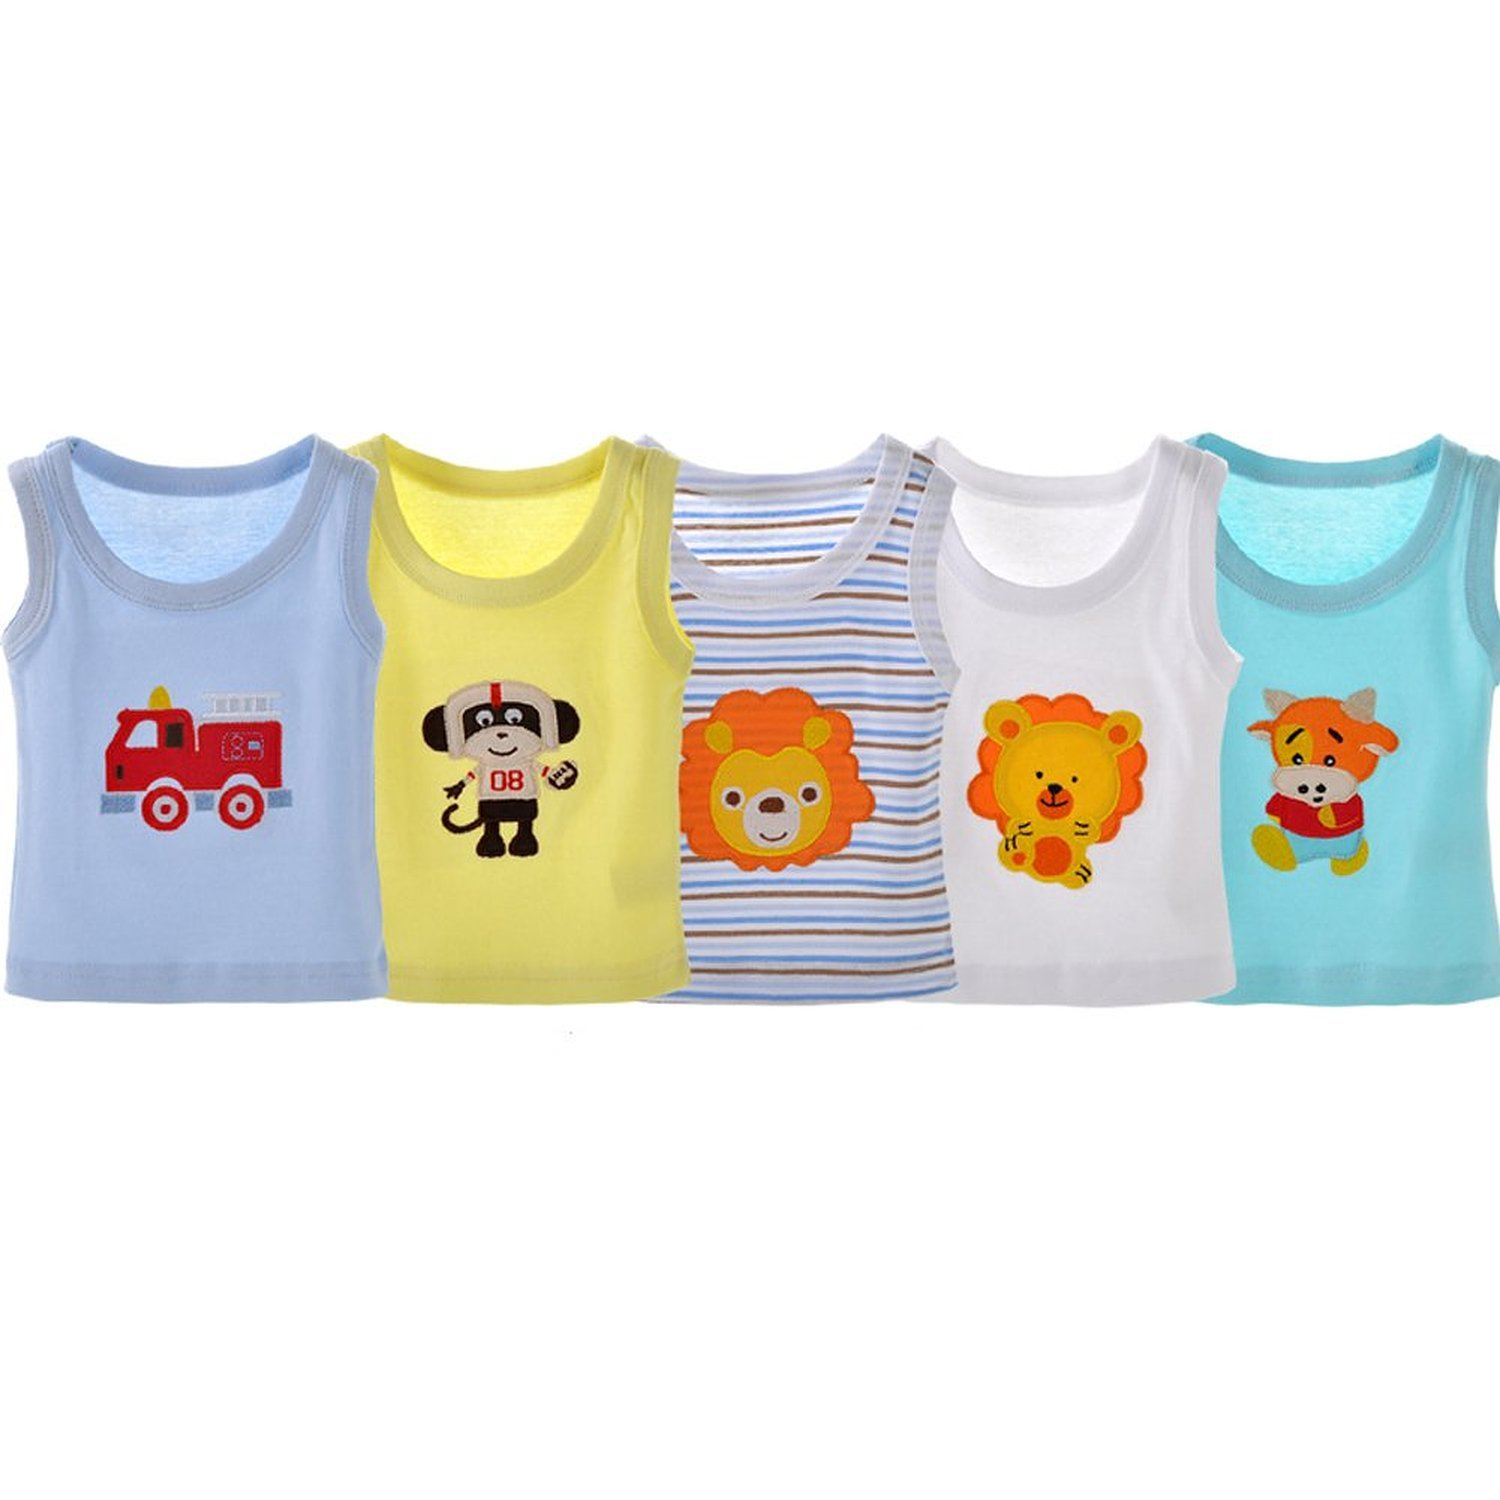 Yanzi6 Baby Boys Girls' 100 % Cotton 5 Pack Cartoon Sleeveless Tank Tops